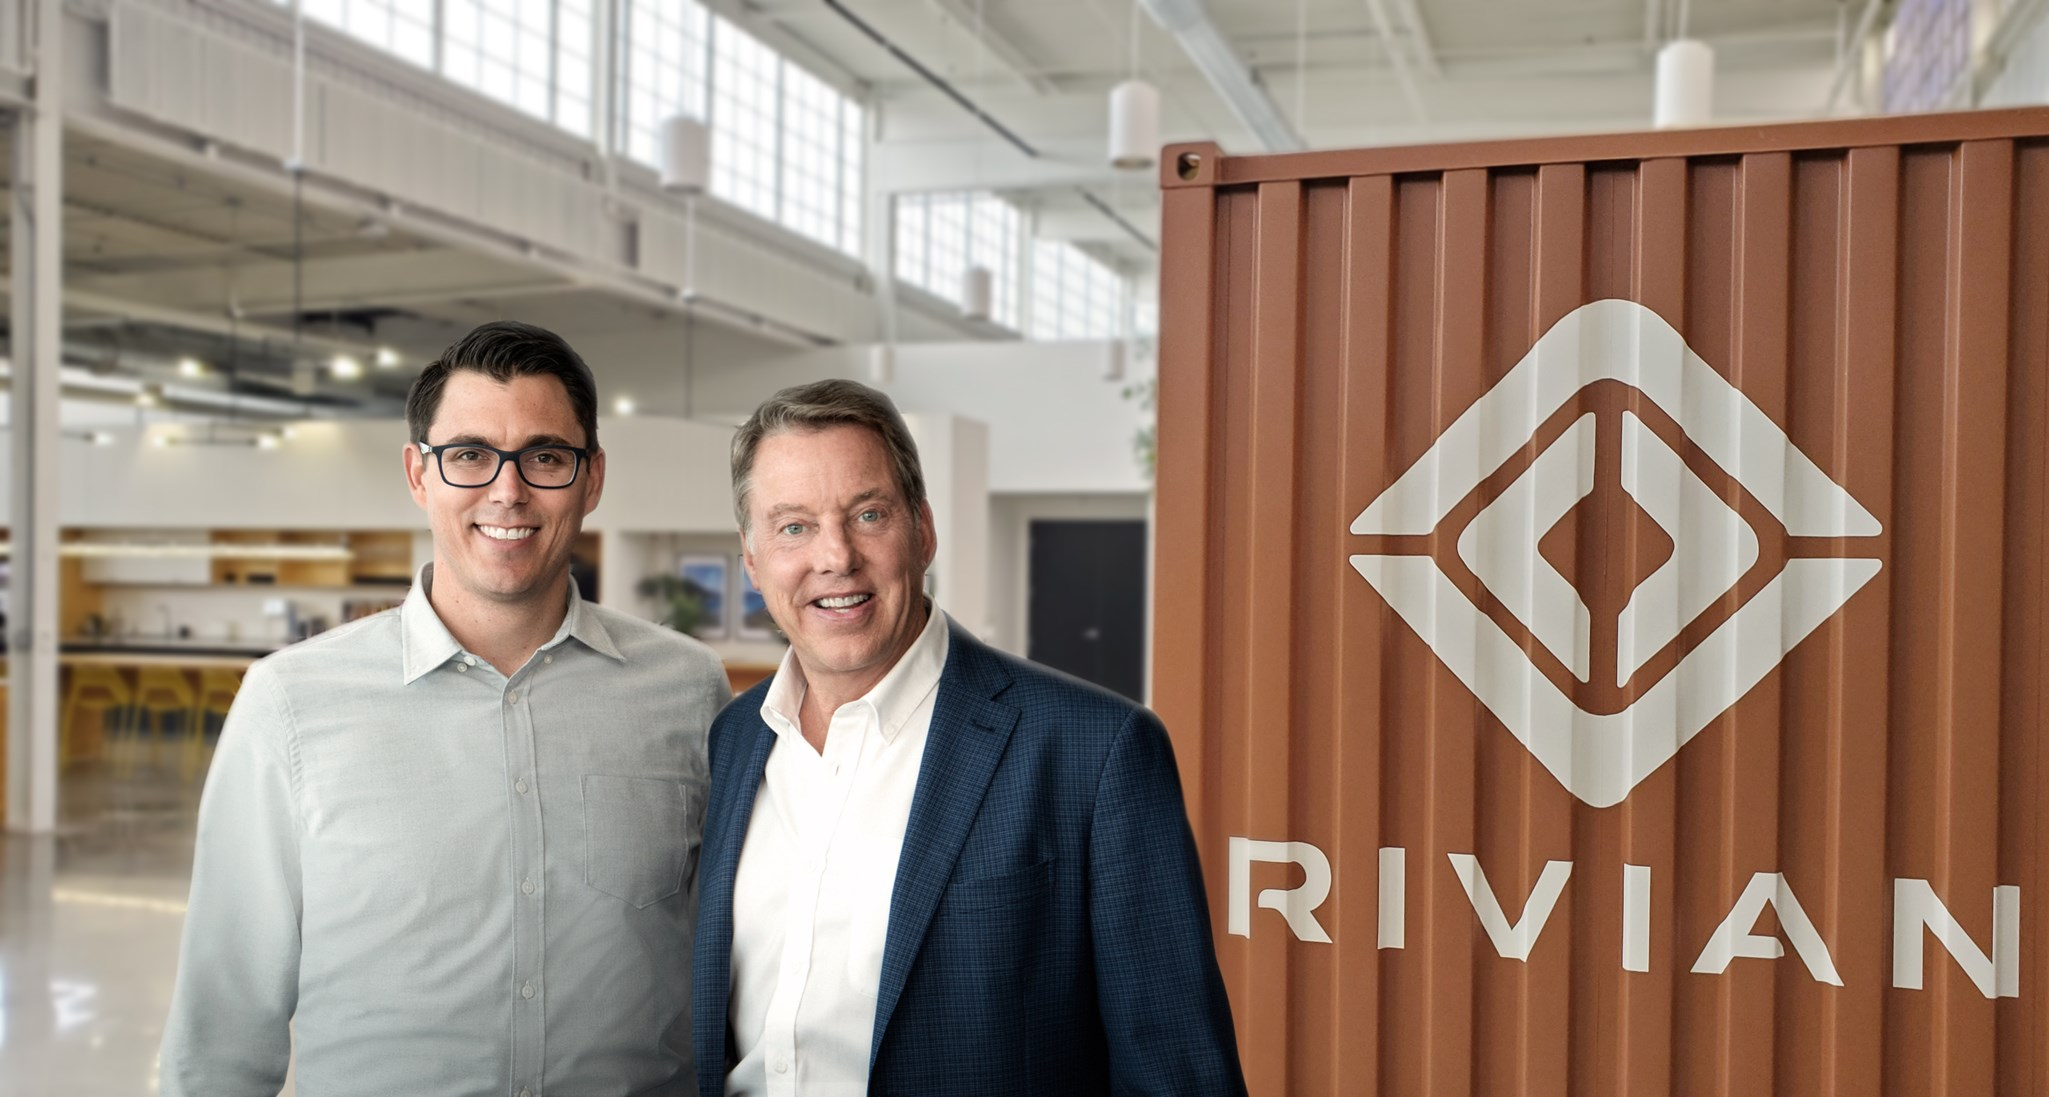 Ford invests $500 million in Rivian, will develop EV on its platform